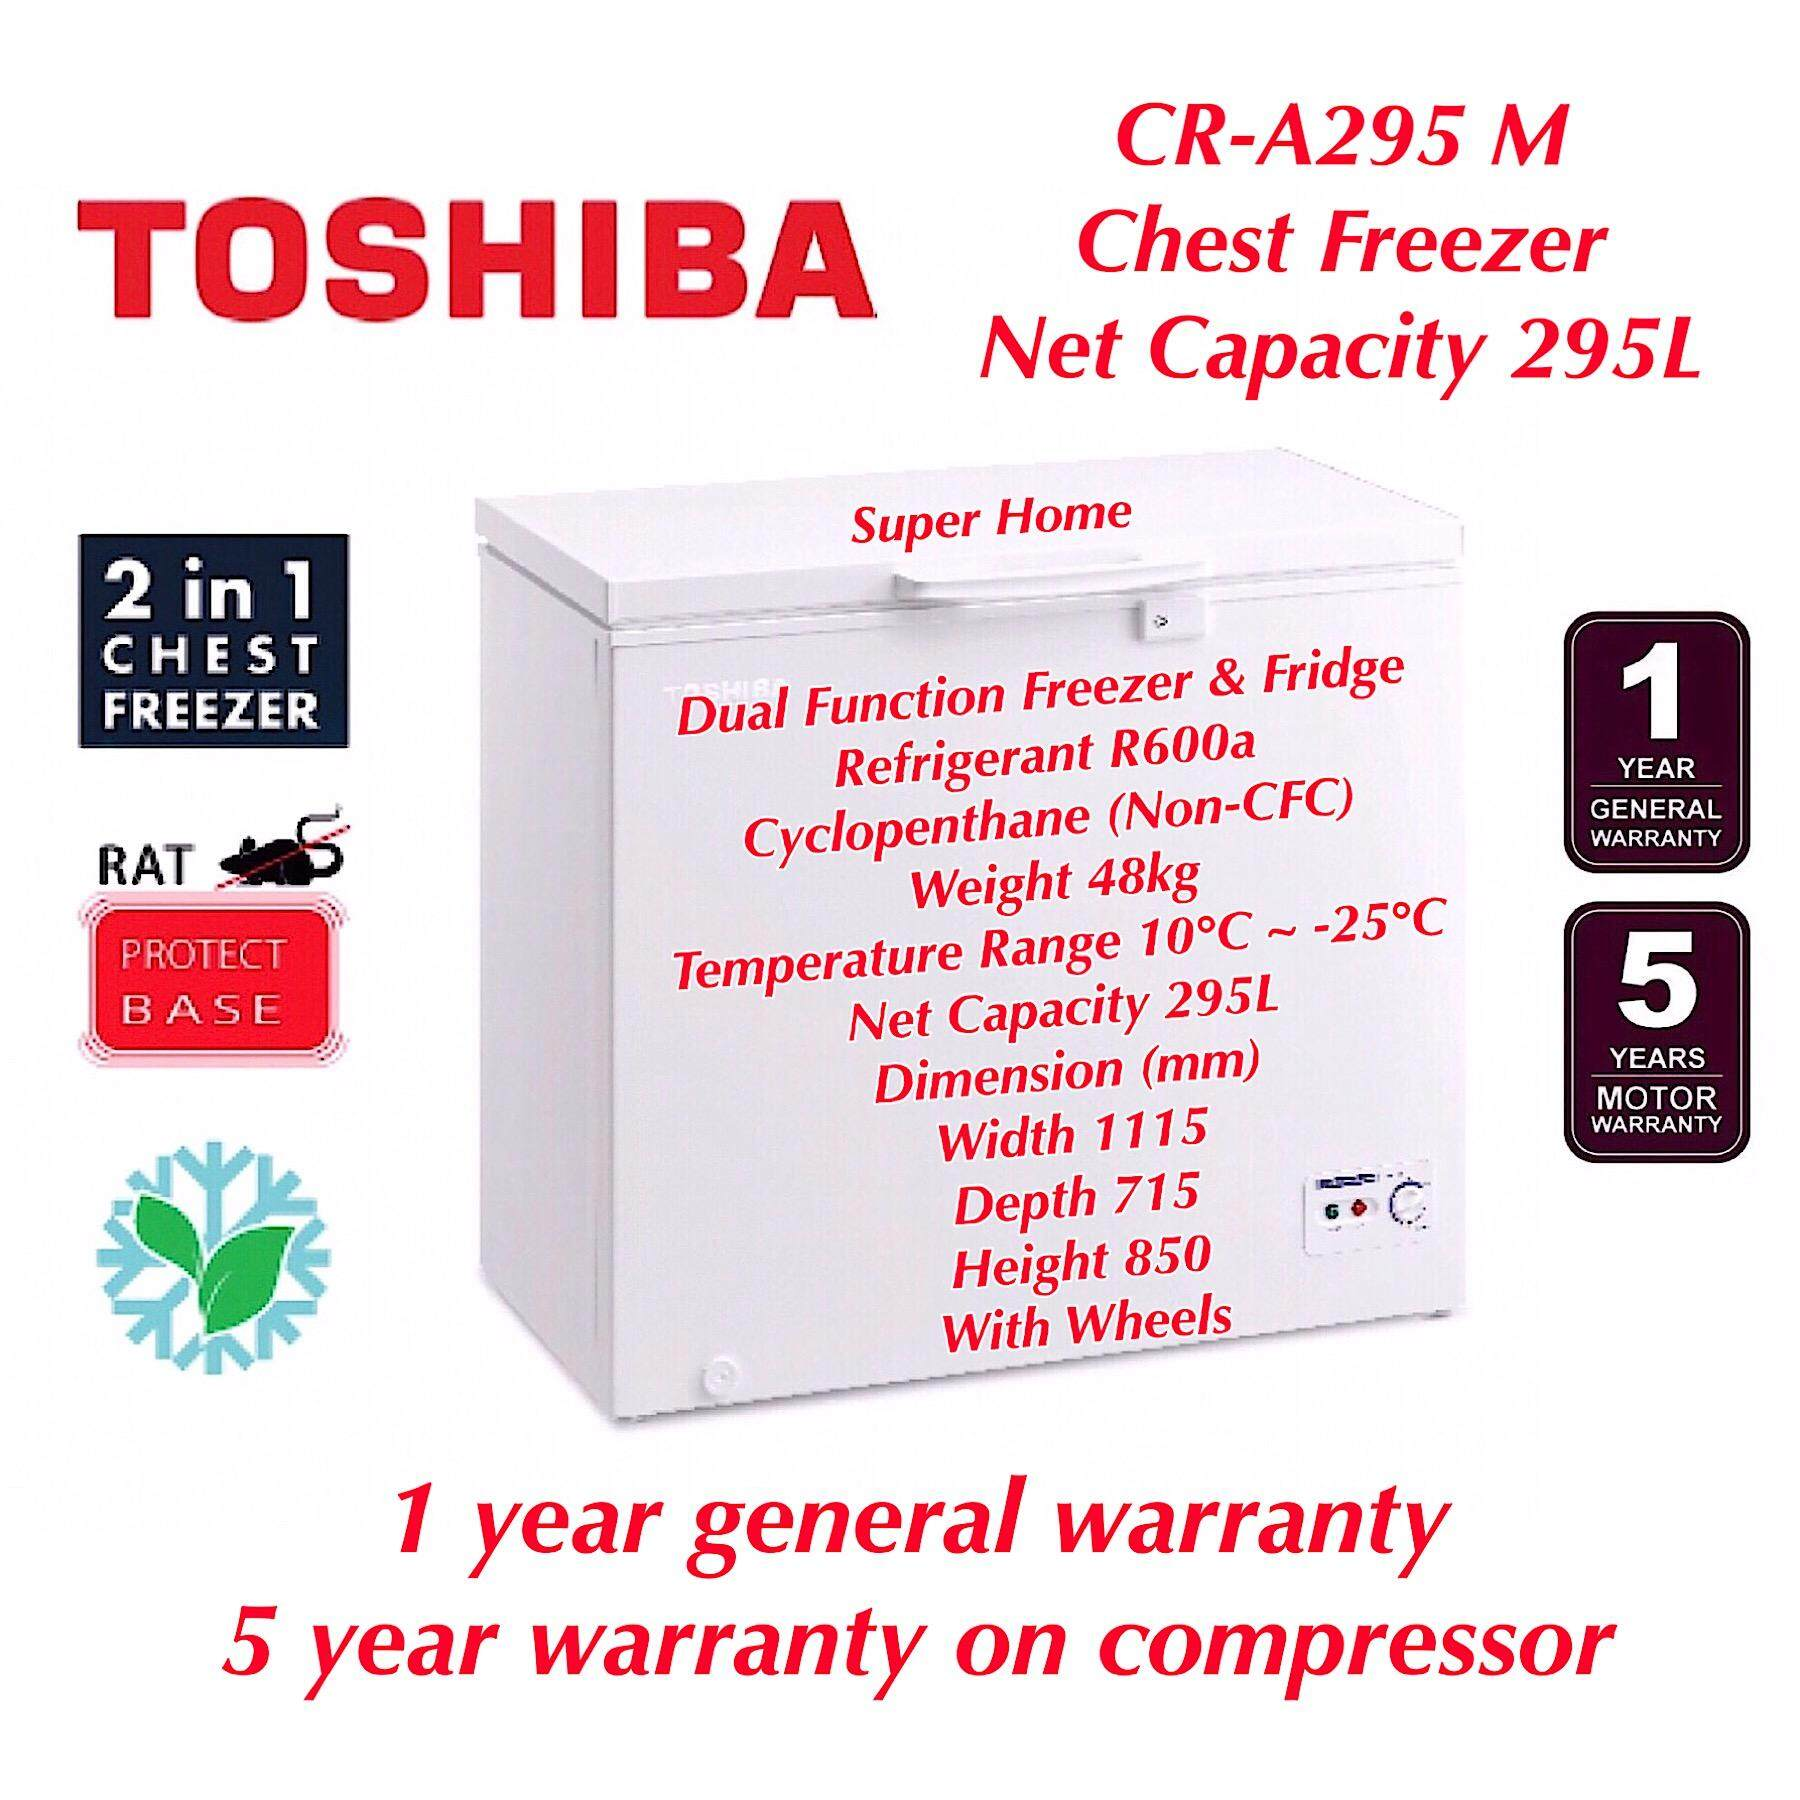 Toshiba 2 in 1 Dual Function Chest Freezer with Refrigerator mode CR-A295M - 295L